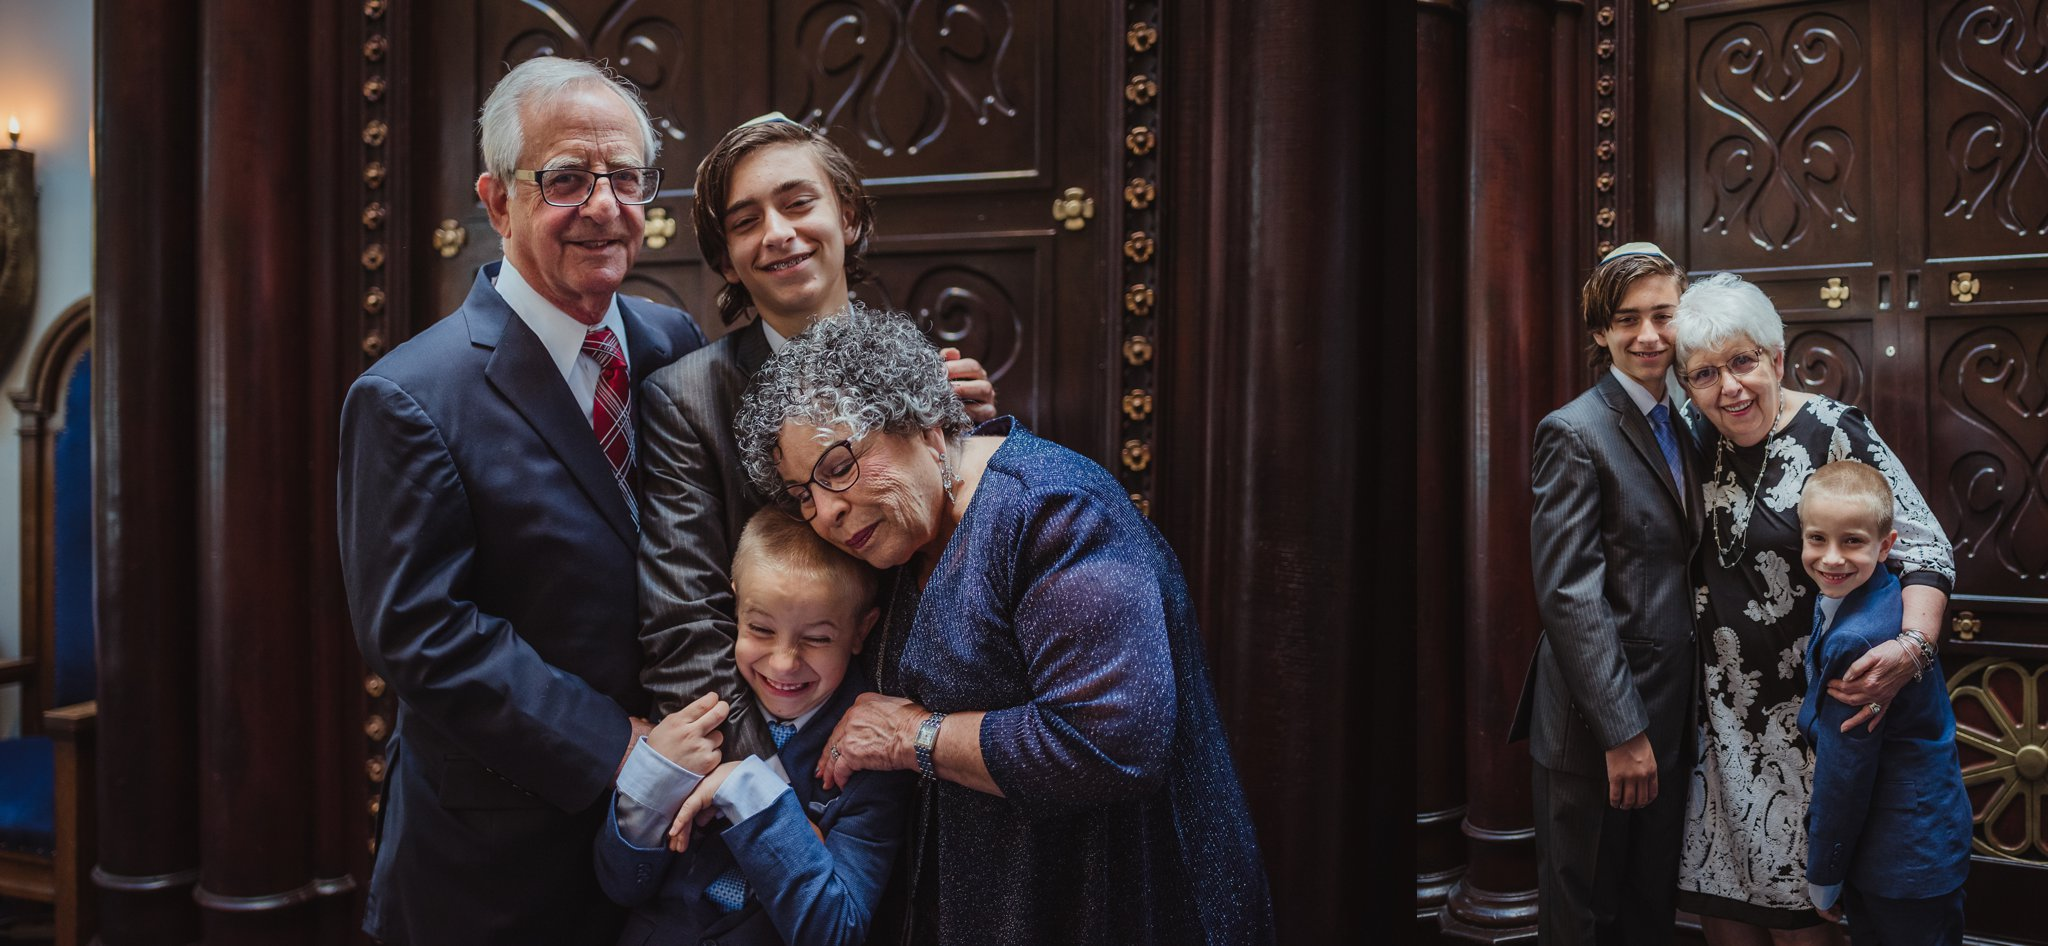 The bar mitzvah boy poses with his grandparents for Rose Trail Images at Temple Beth Or in Raleigh, North Carolina.